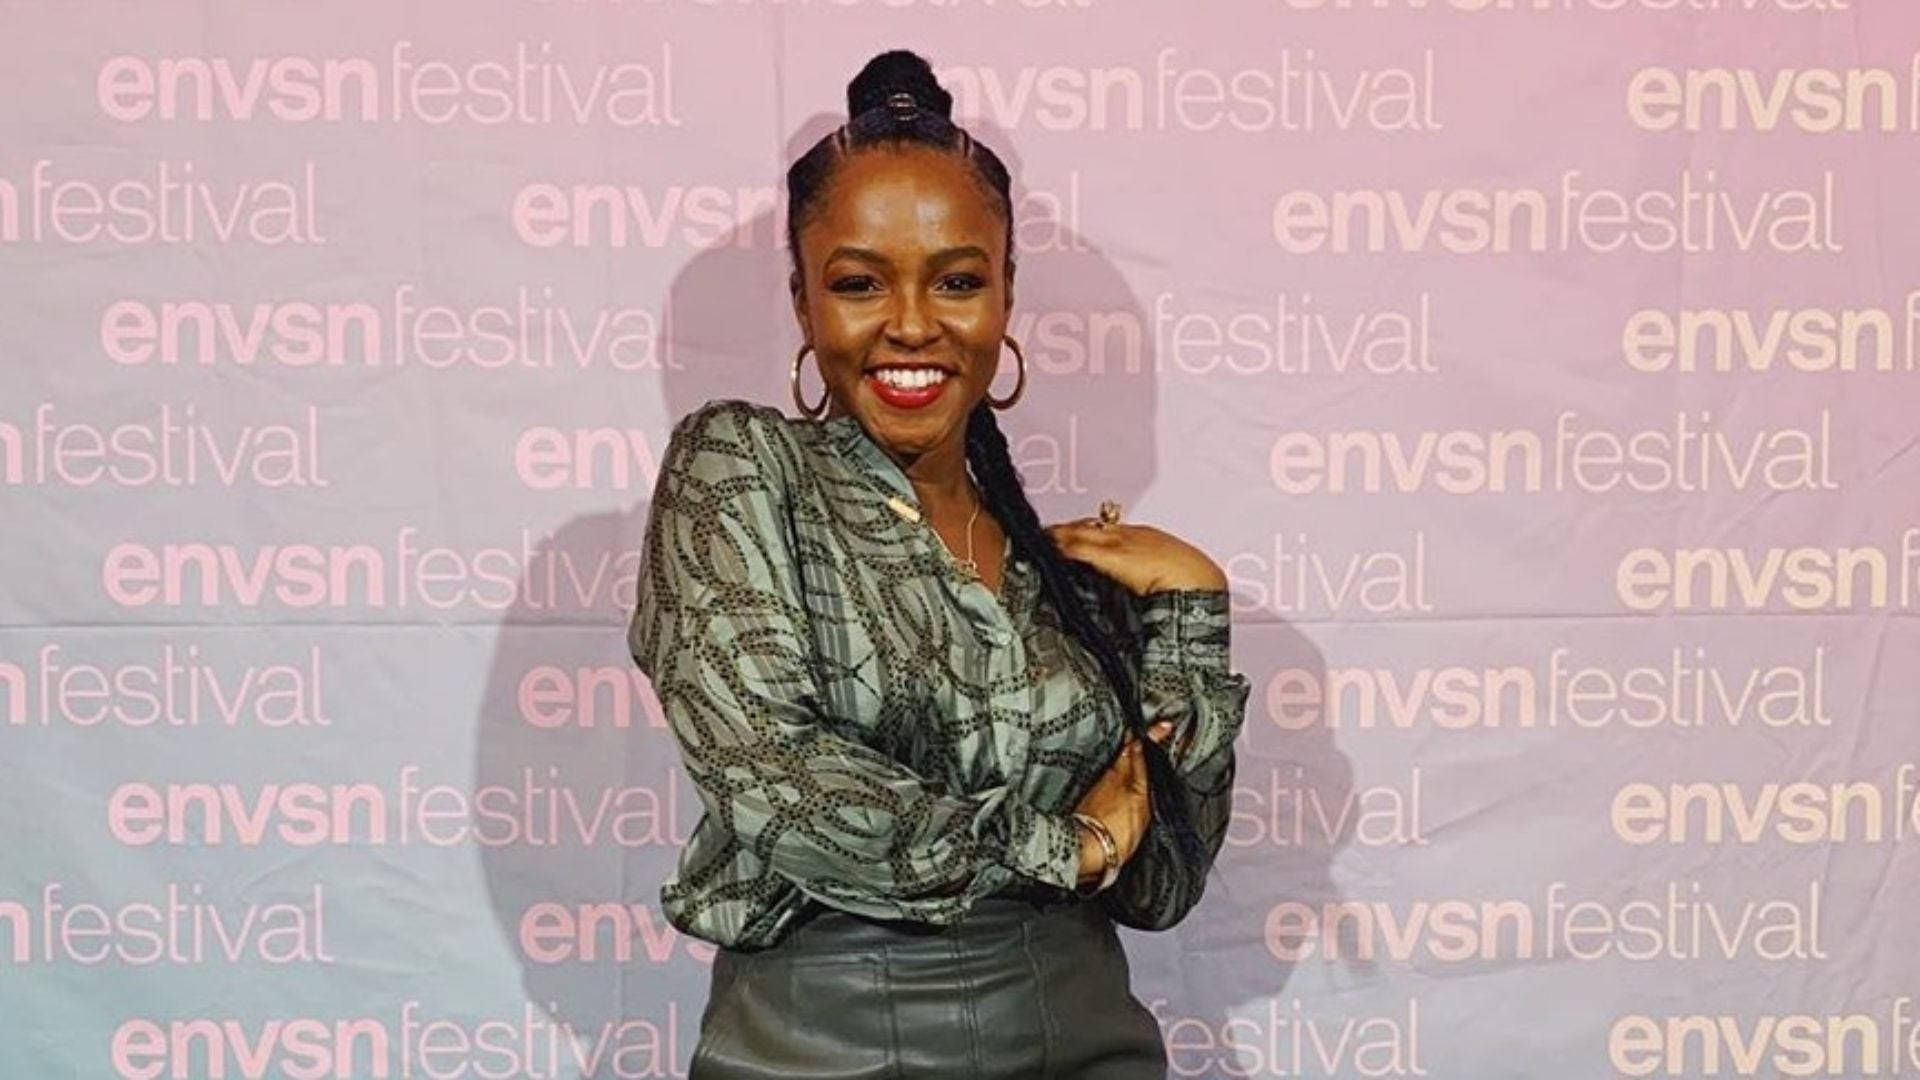 ENVSN Fest: Gia Peppers On Building Your Brand